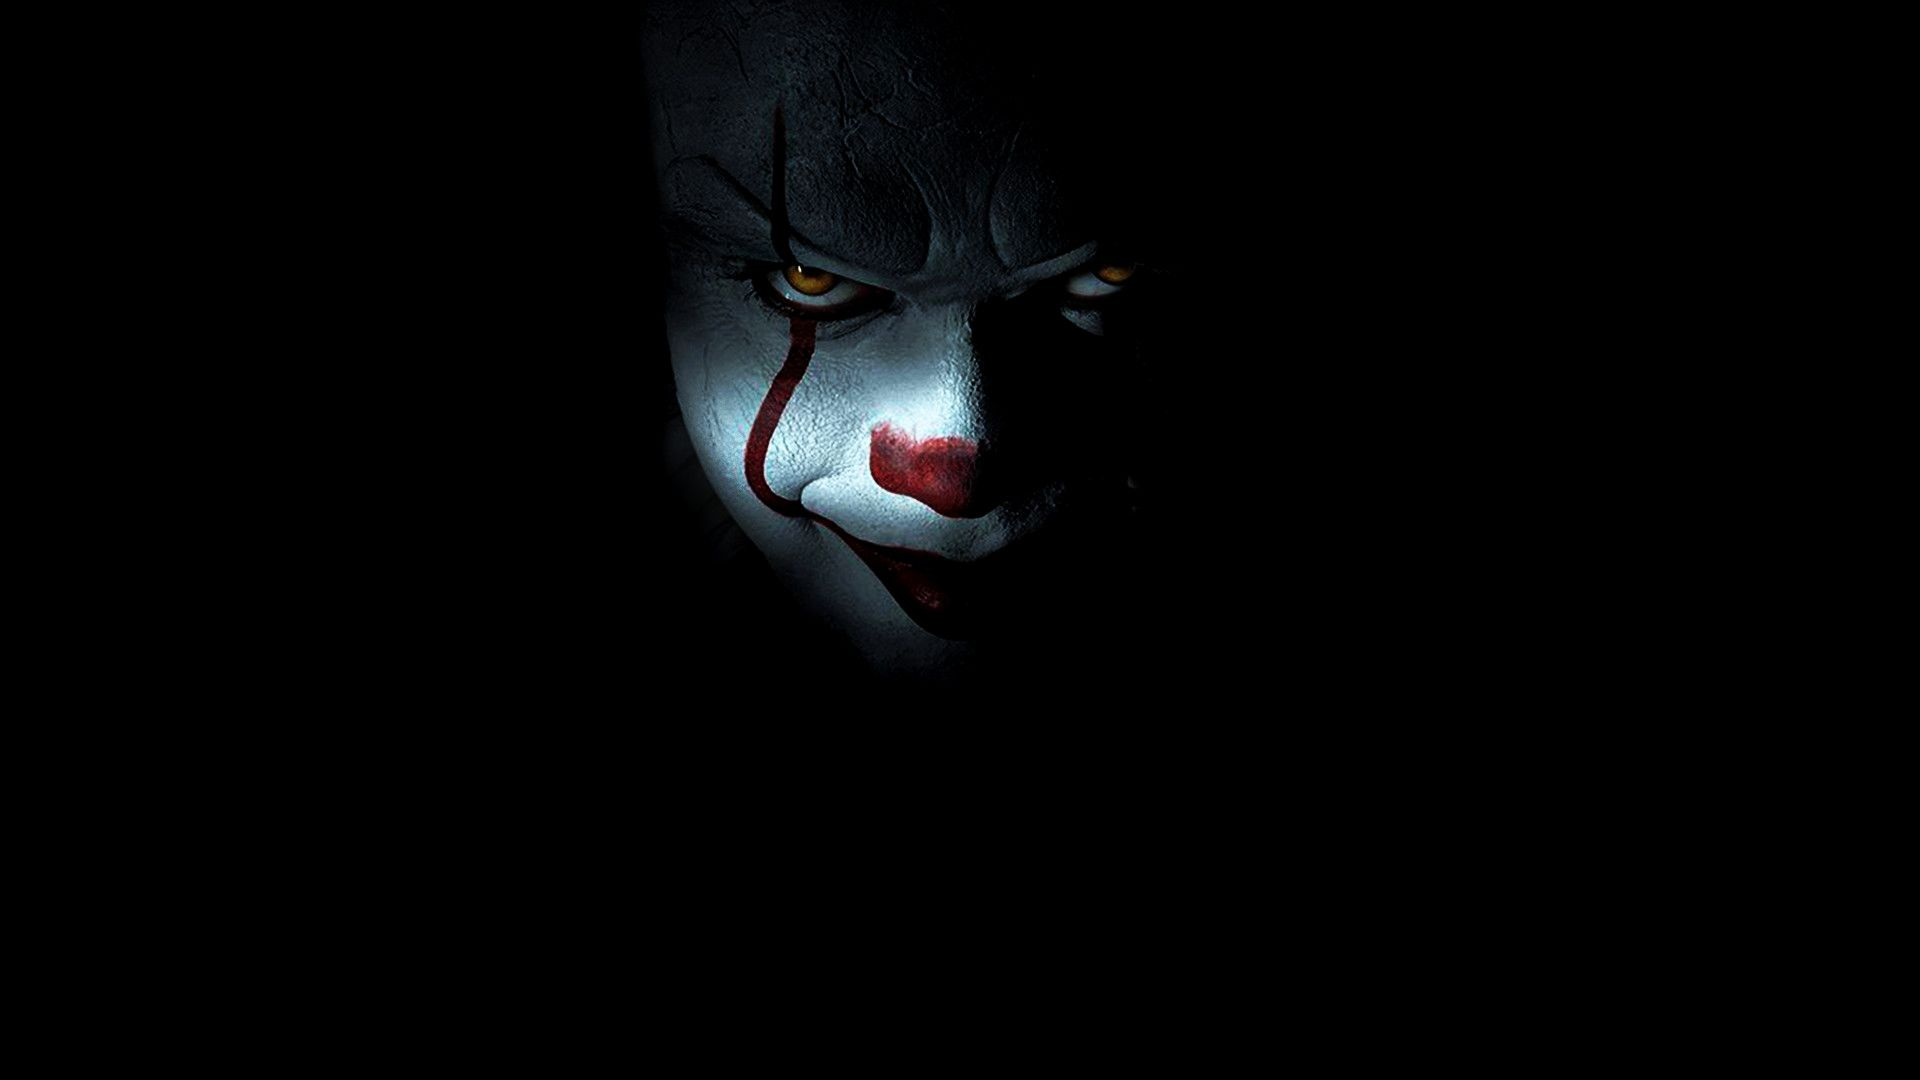 59 Scary Clowns Wallpapers On Wallpaperplay Scary Wallpaper Halloween Wallpaper Pennywise The Clown